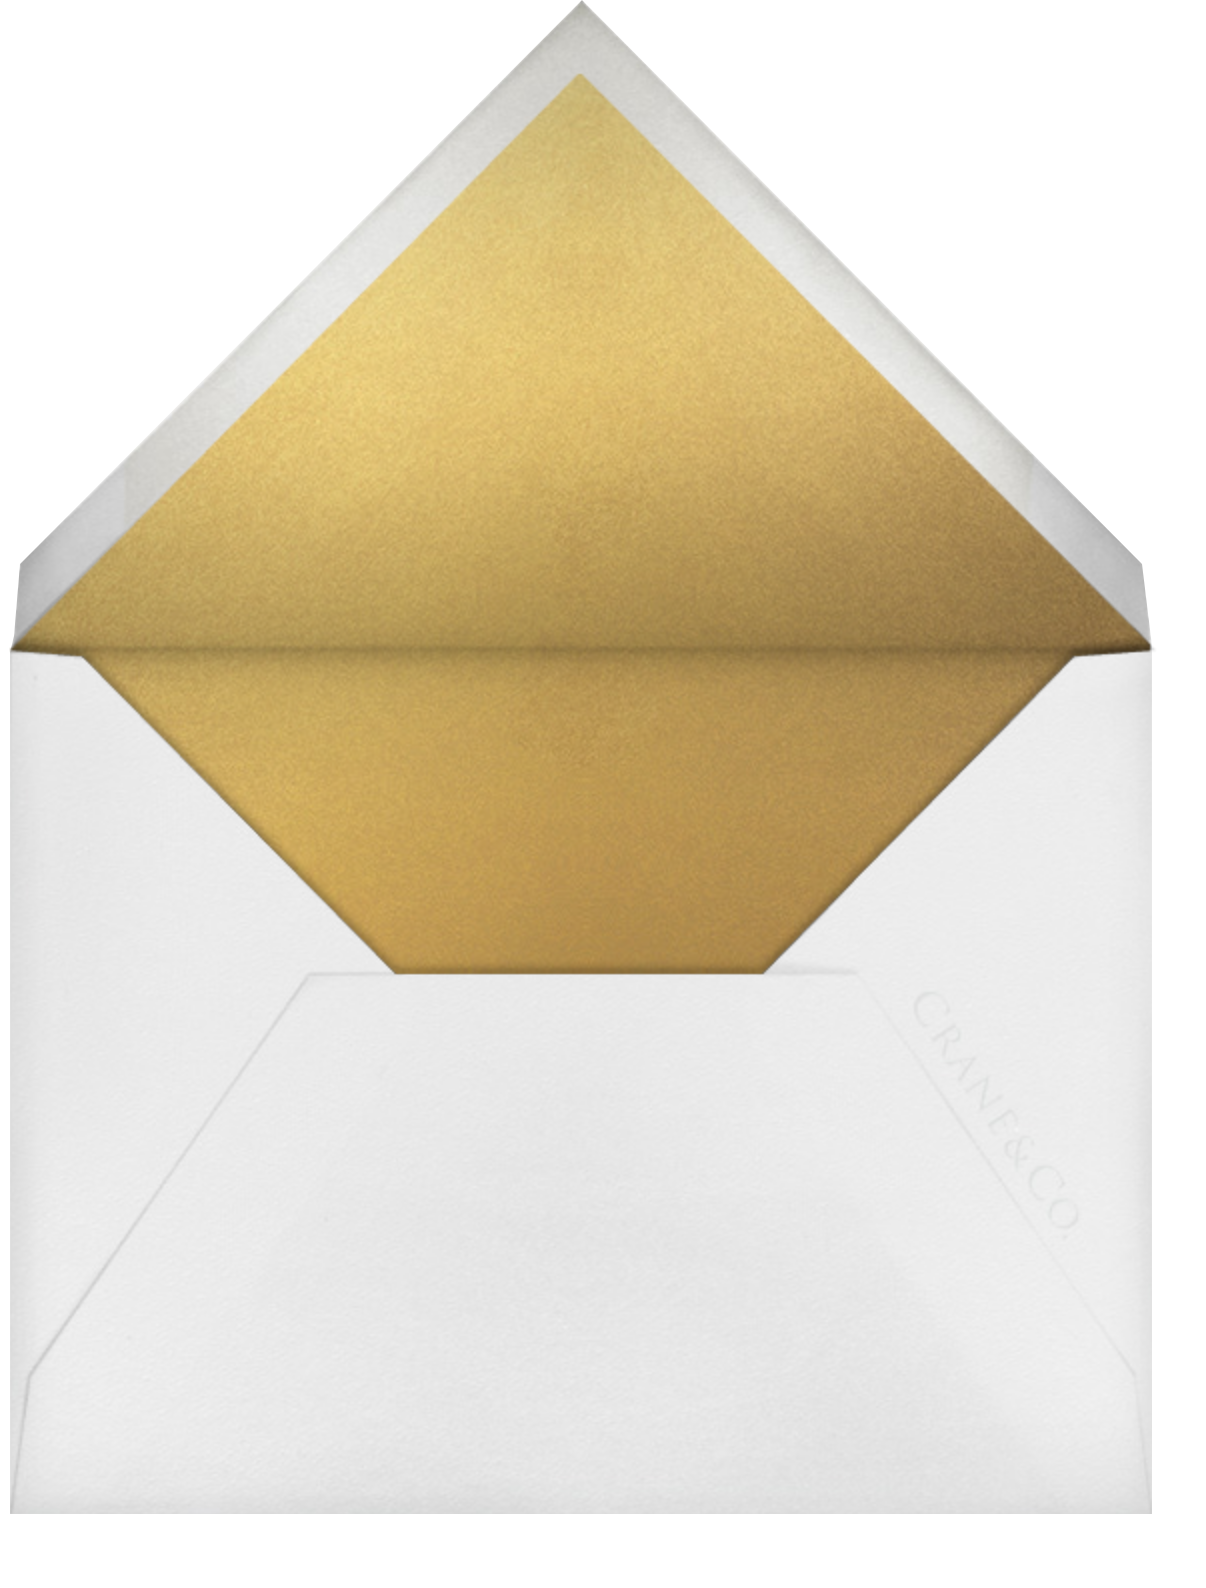 Croquembouche - She (Gold) - Paperless Post - Engagement party - envelope back